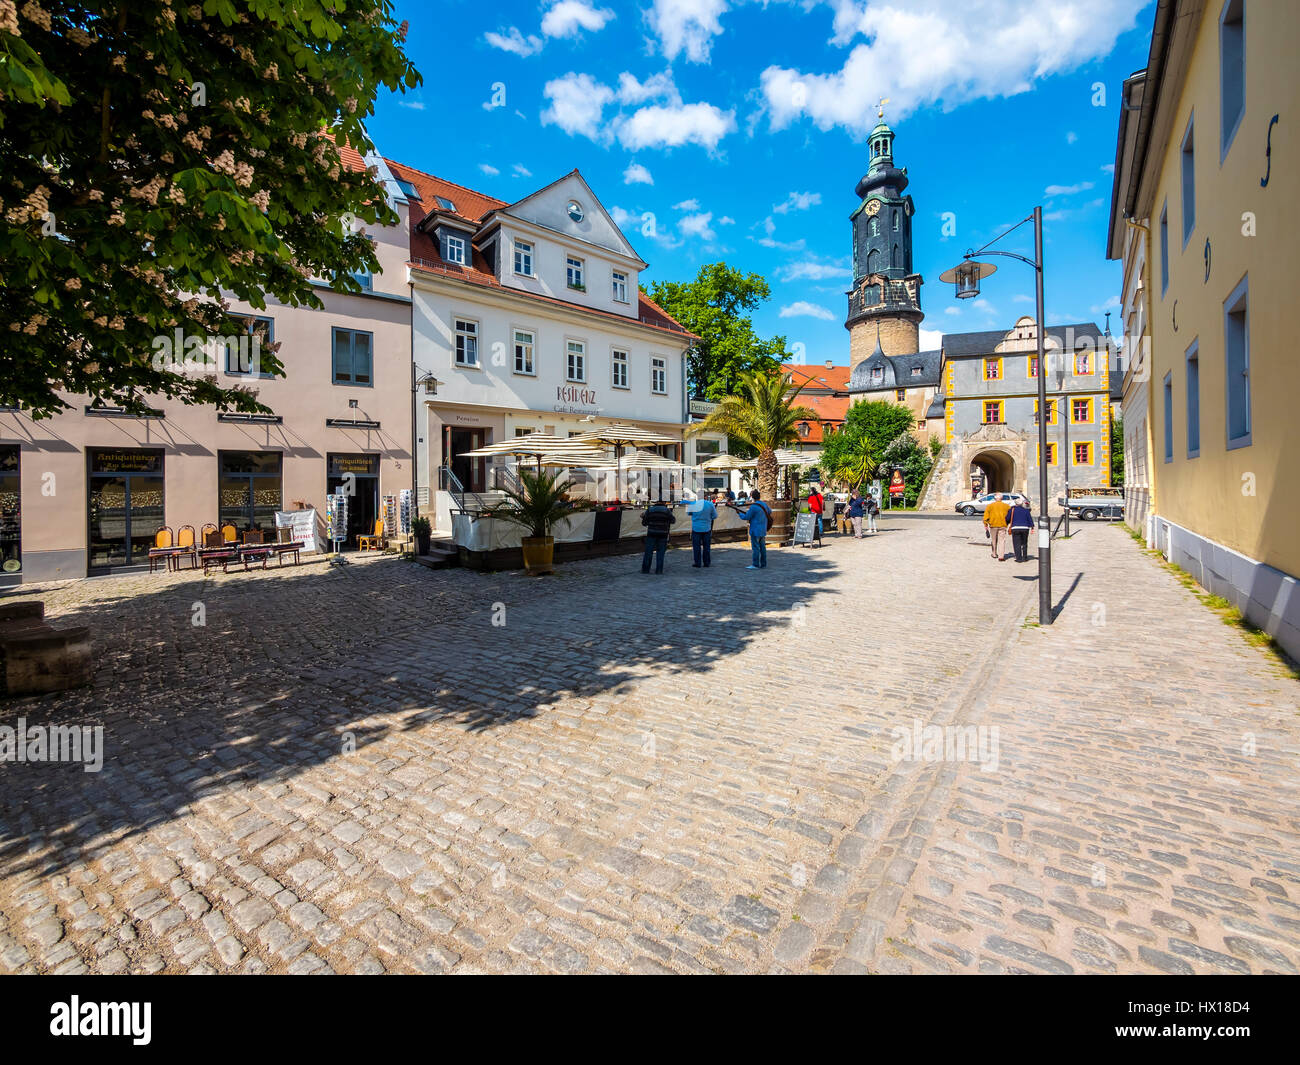 weimar germany thuringia castle stockfotos weimar germany thuringia castle bilder alamy. Black Bedroom Furniture Sets. Home Design Ideas